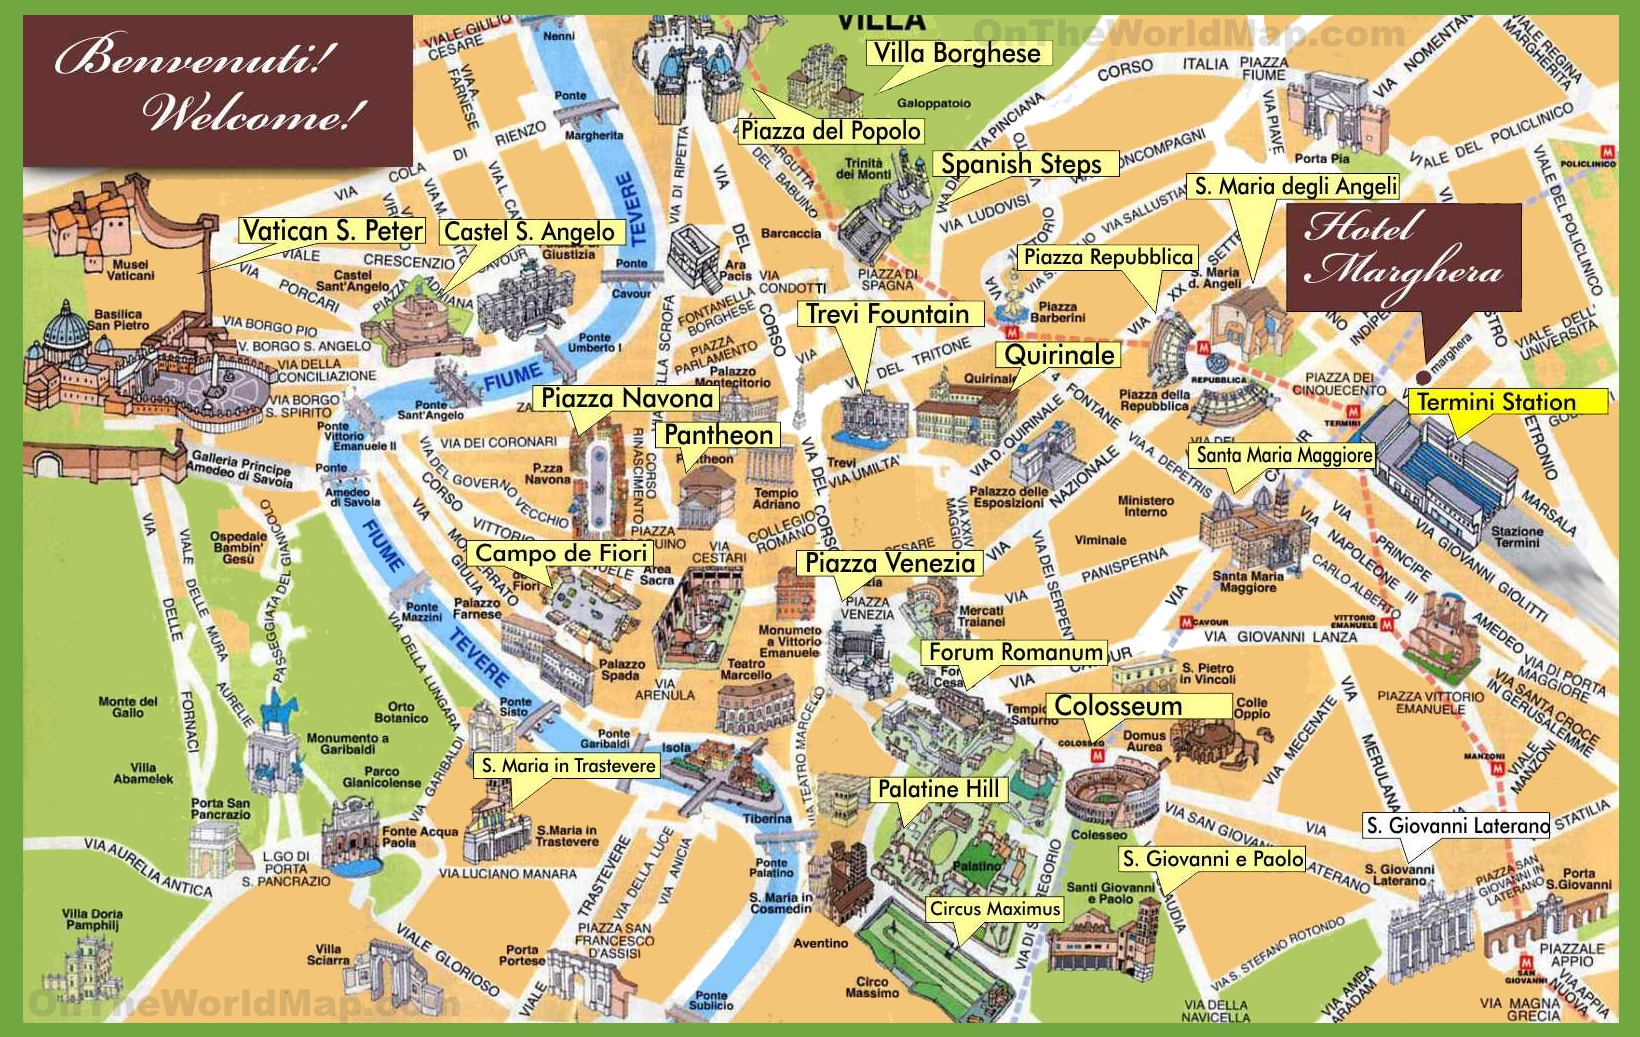 http://ontheworldmap.com/italy/city/rome/rome-sightseeing-map.jpg Maps Of Rome Online